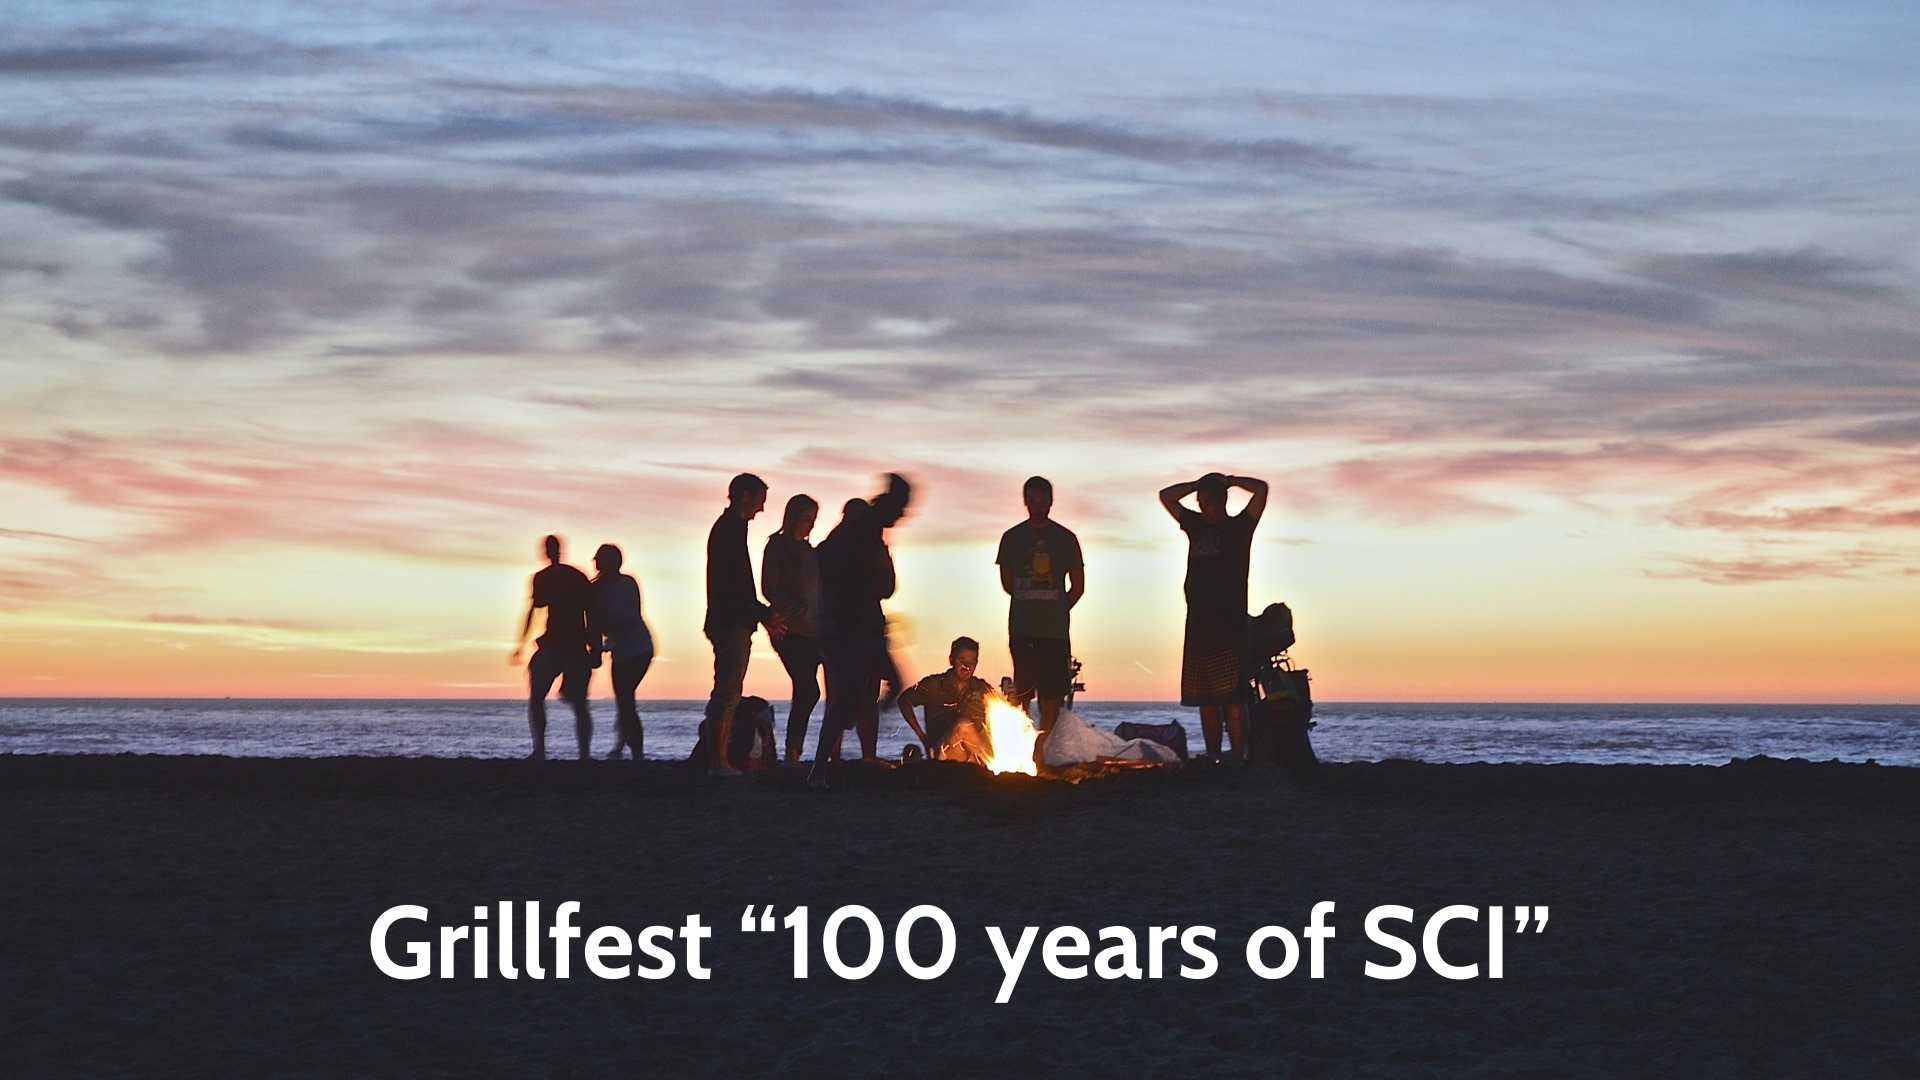 Grillfest poster - sunset in the background, siluhets of people around a campfire